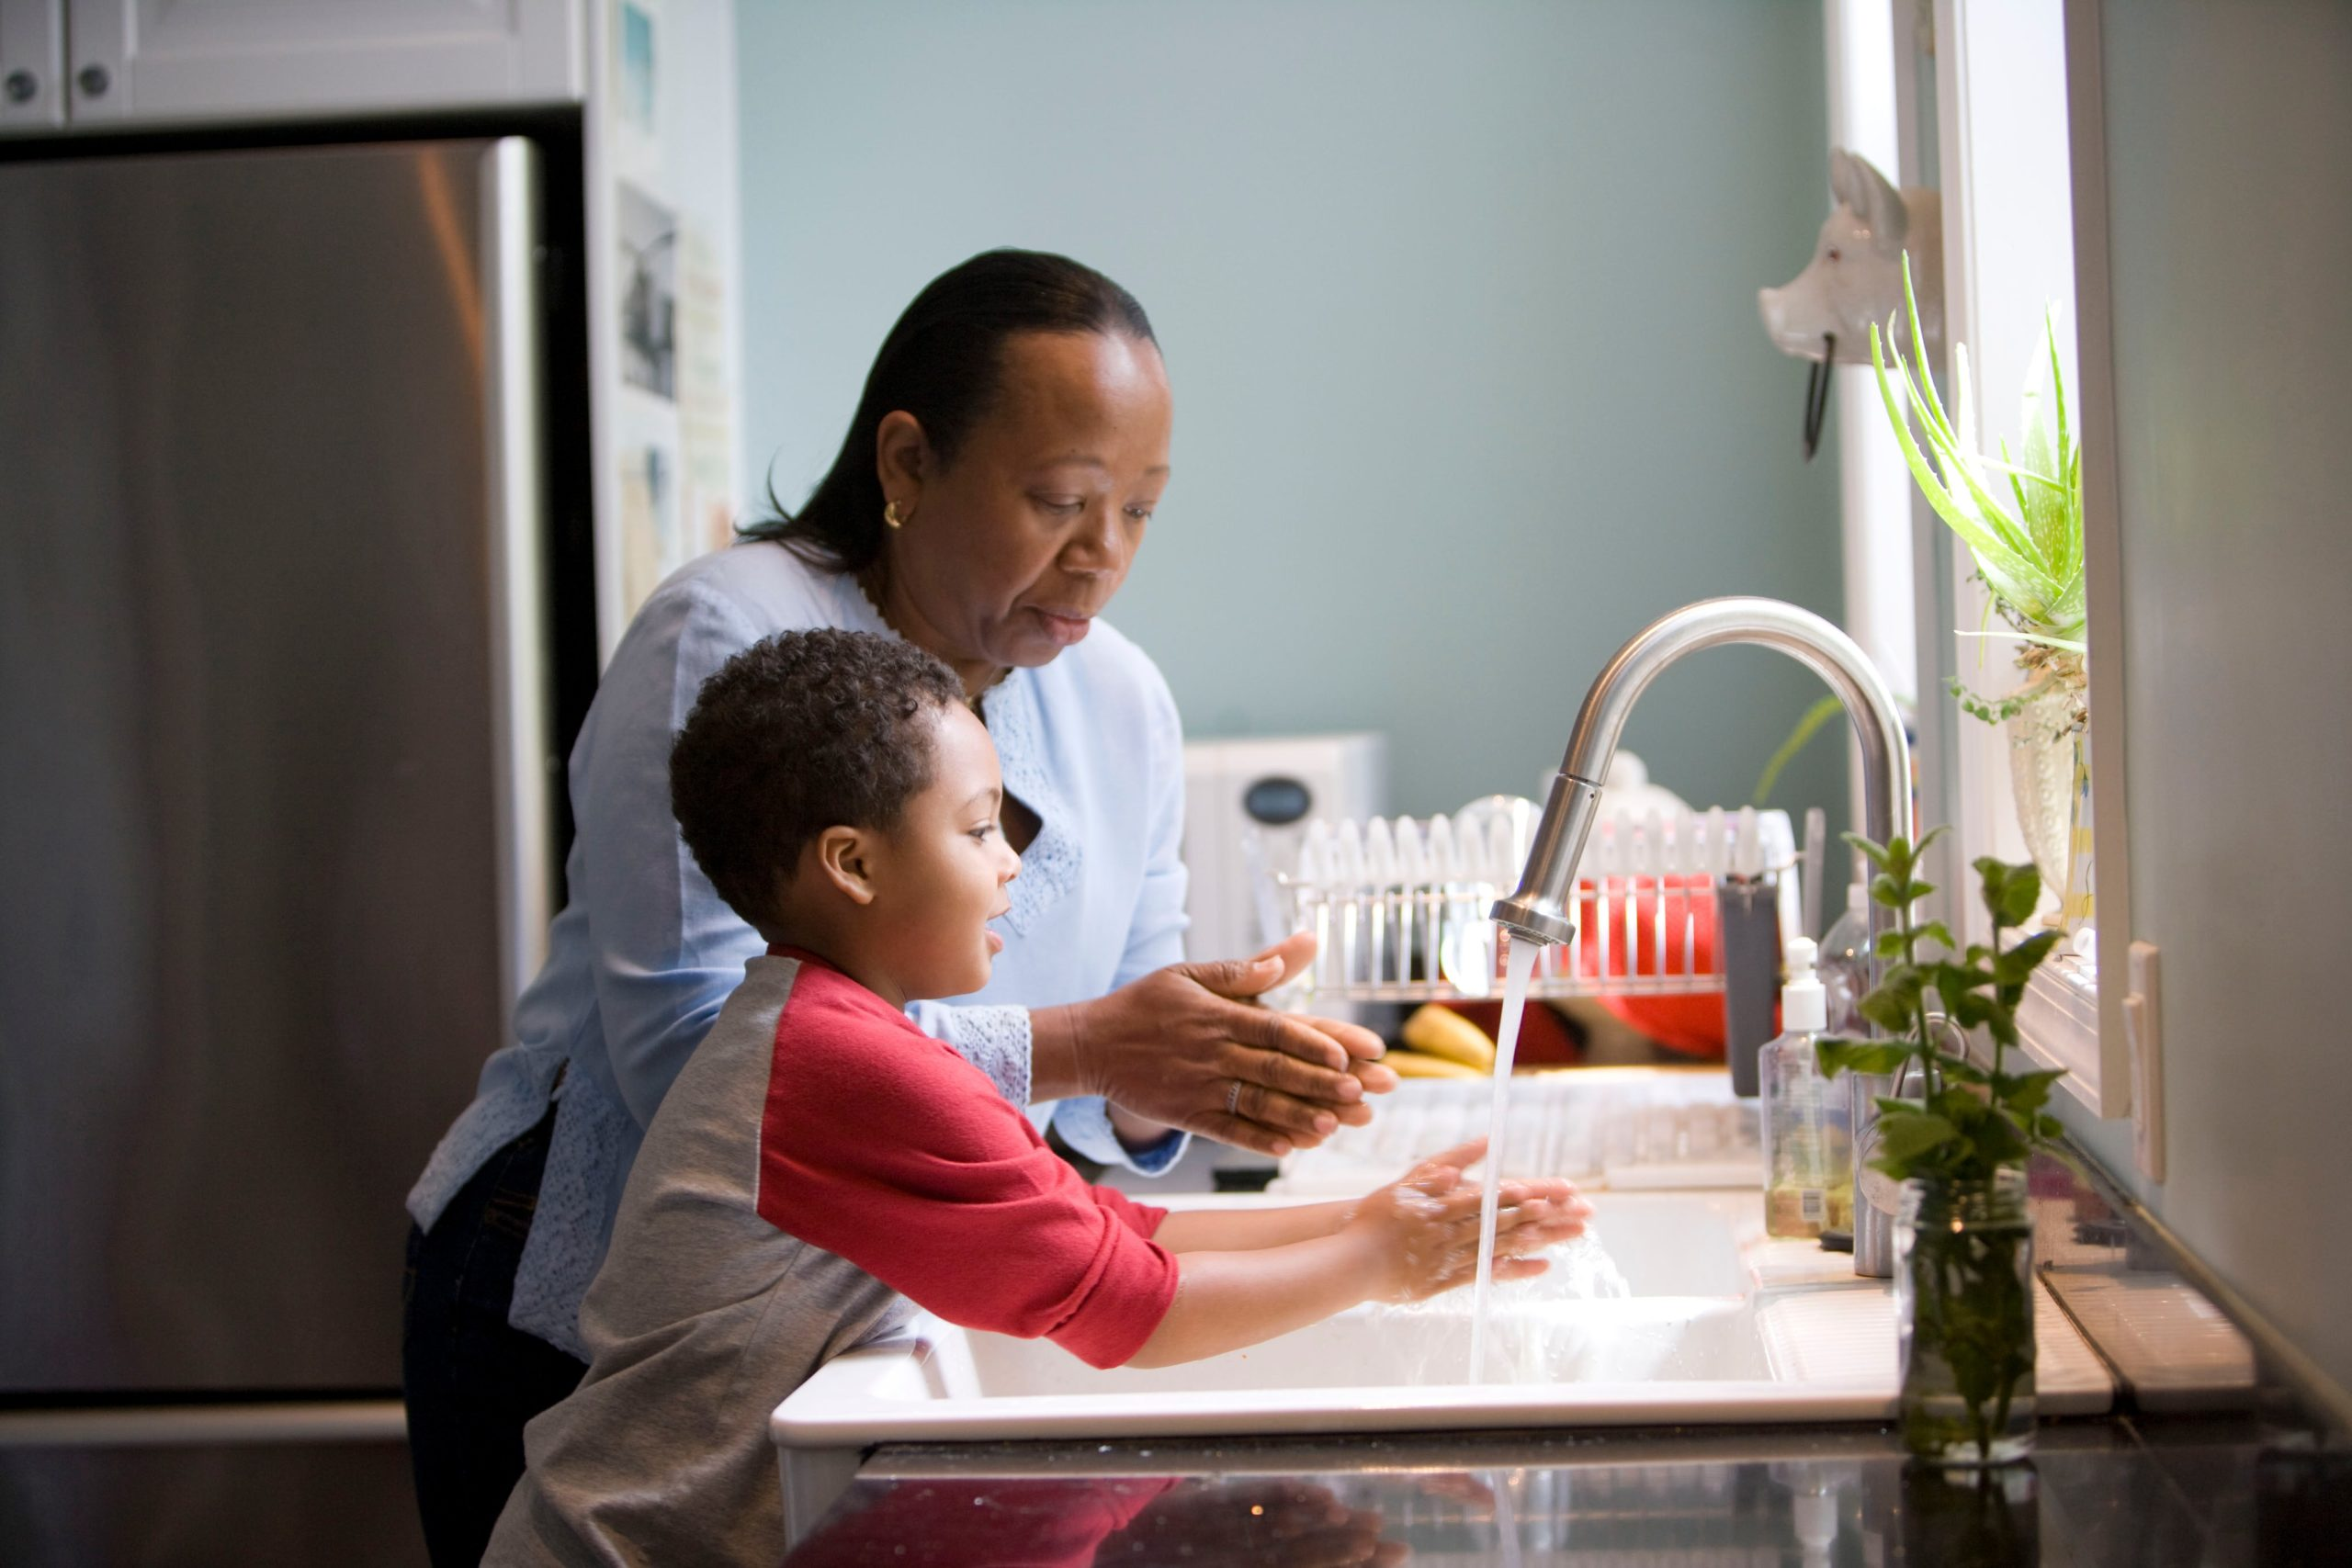 Mother teaching boy how to wash hands properly